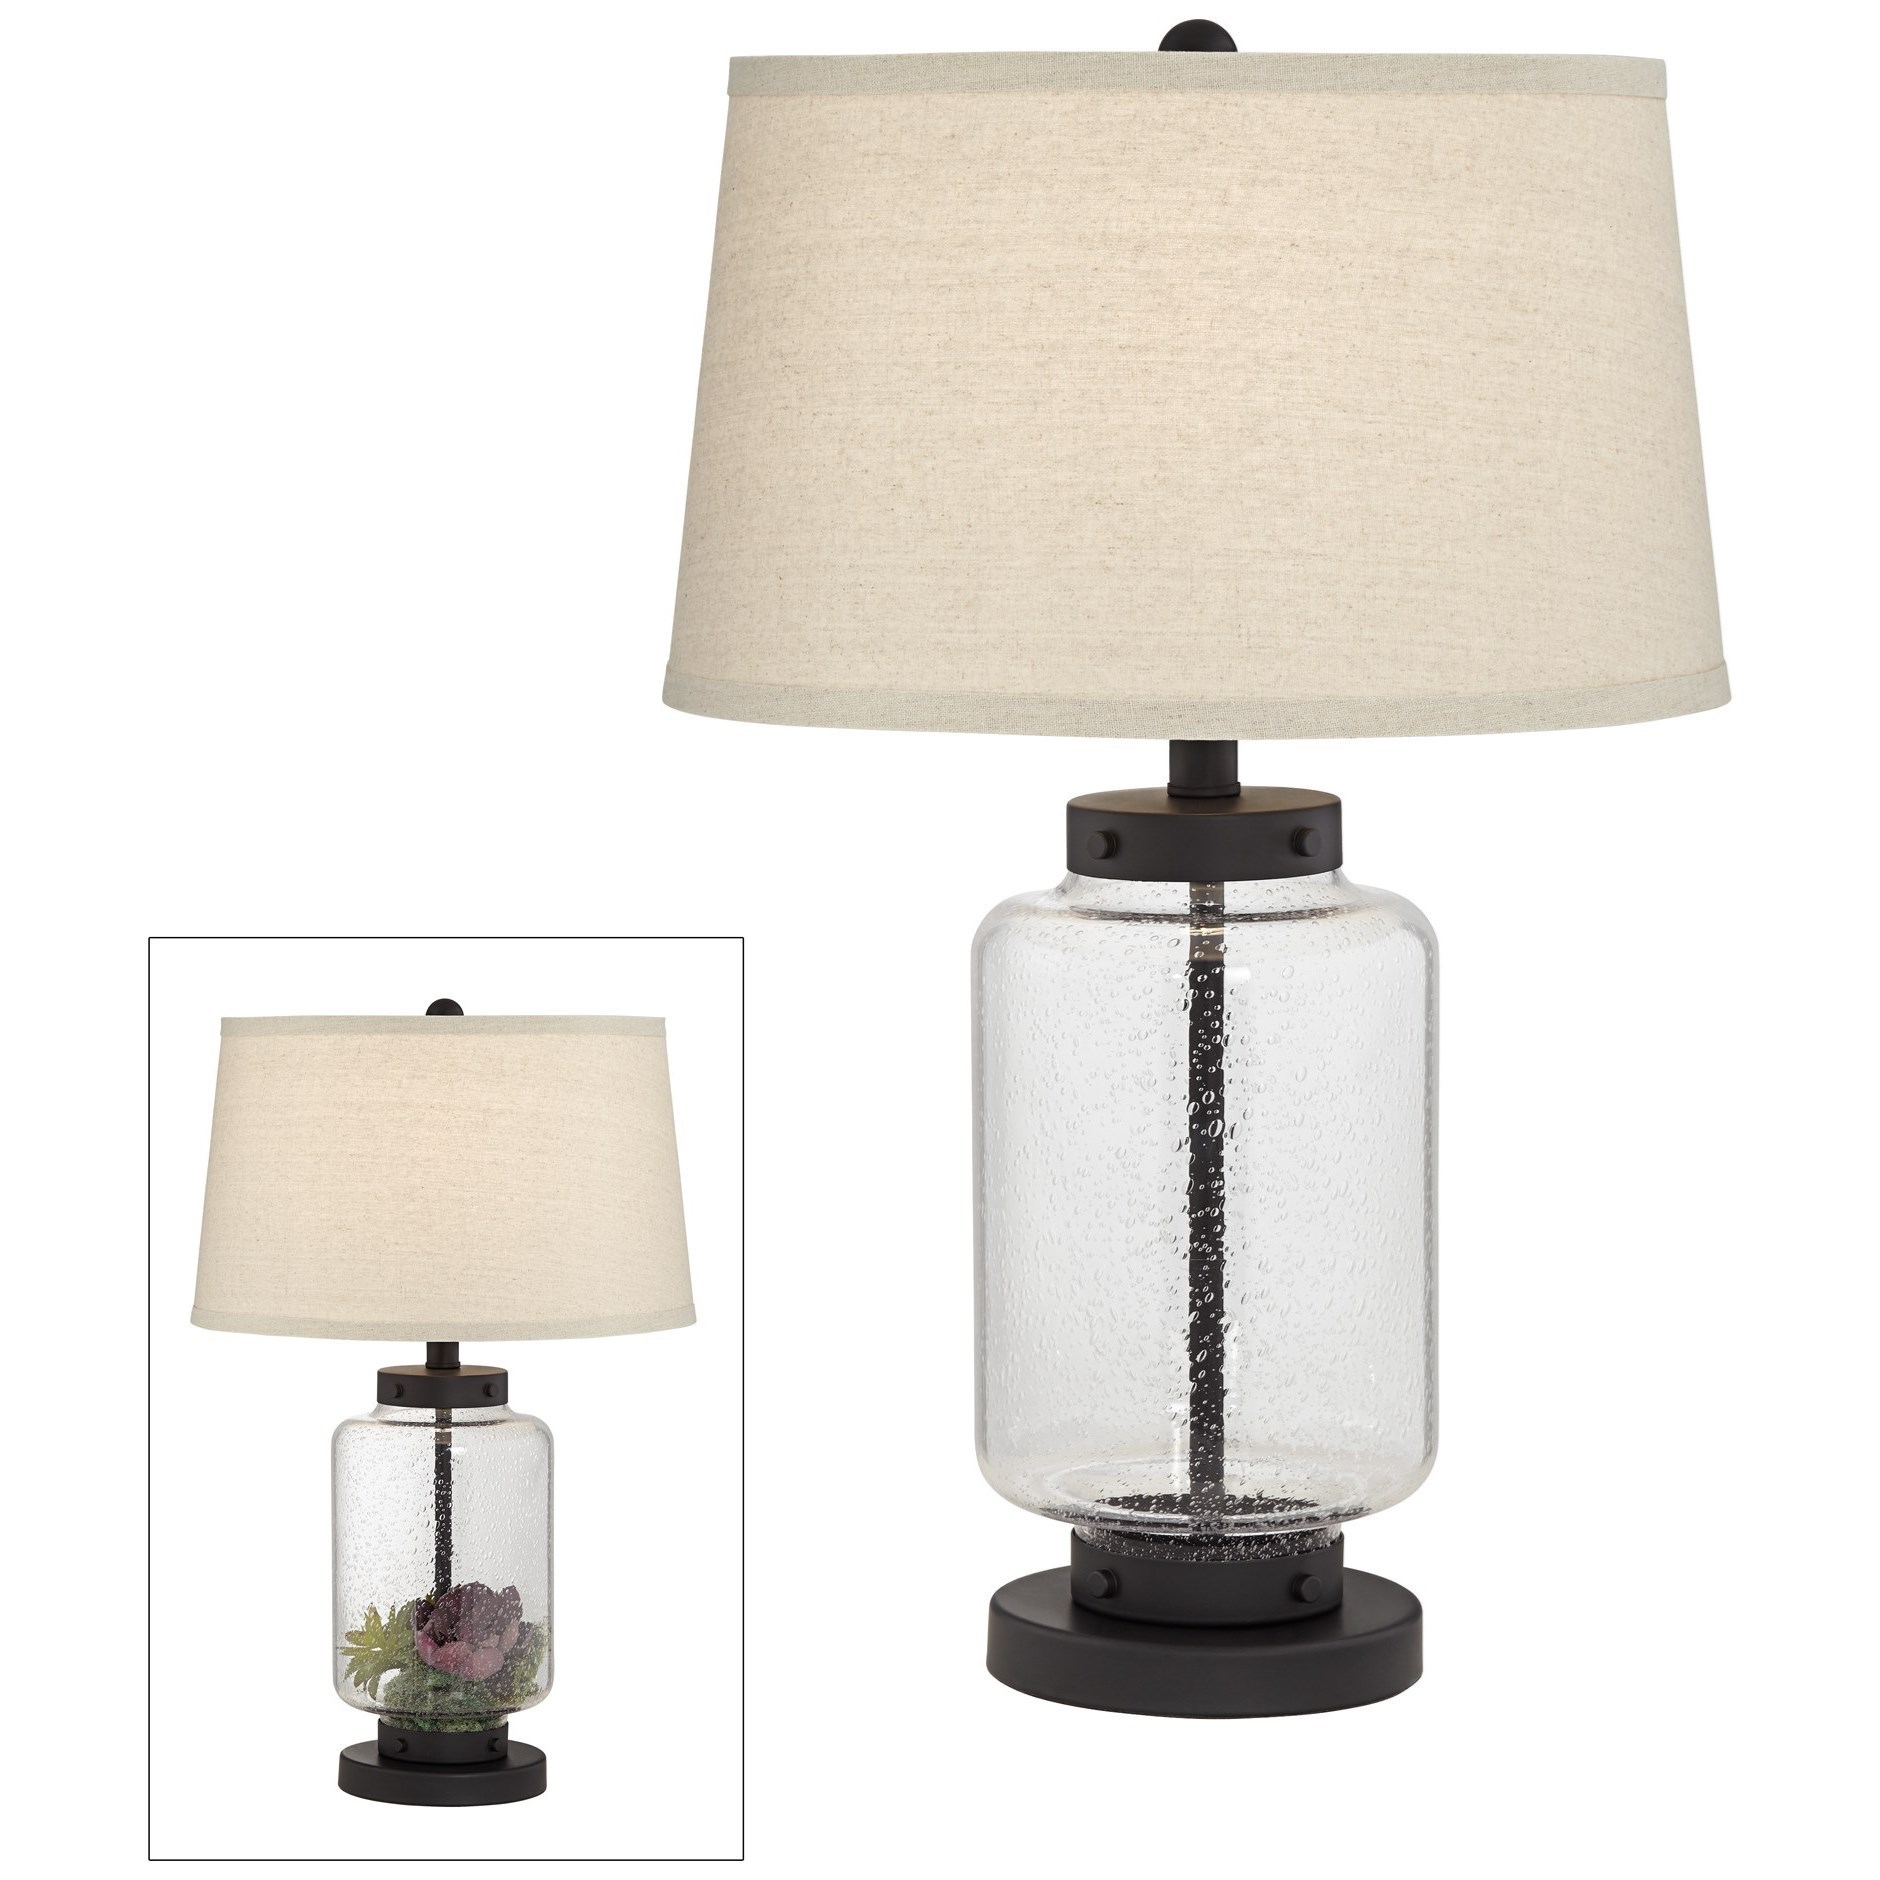 Glass Lamp Tables Ireland Pacific Coast Lighting Table Lamps Kathy Ireland Table Lamp With